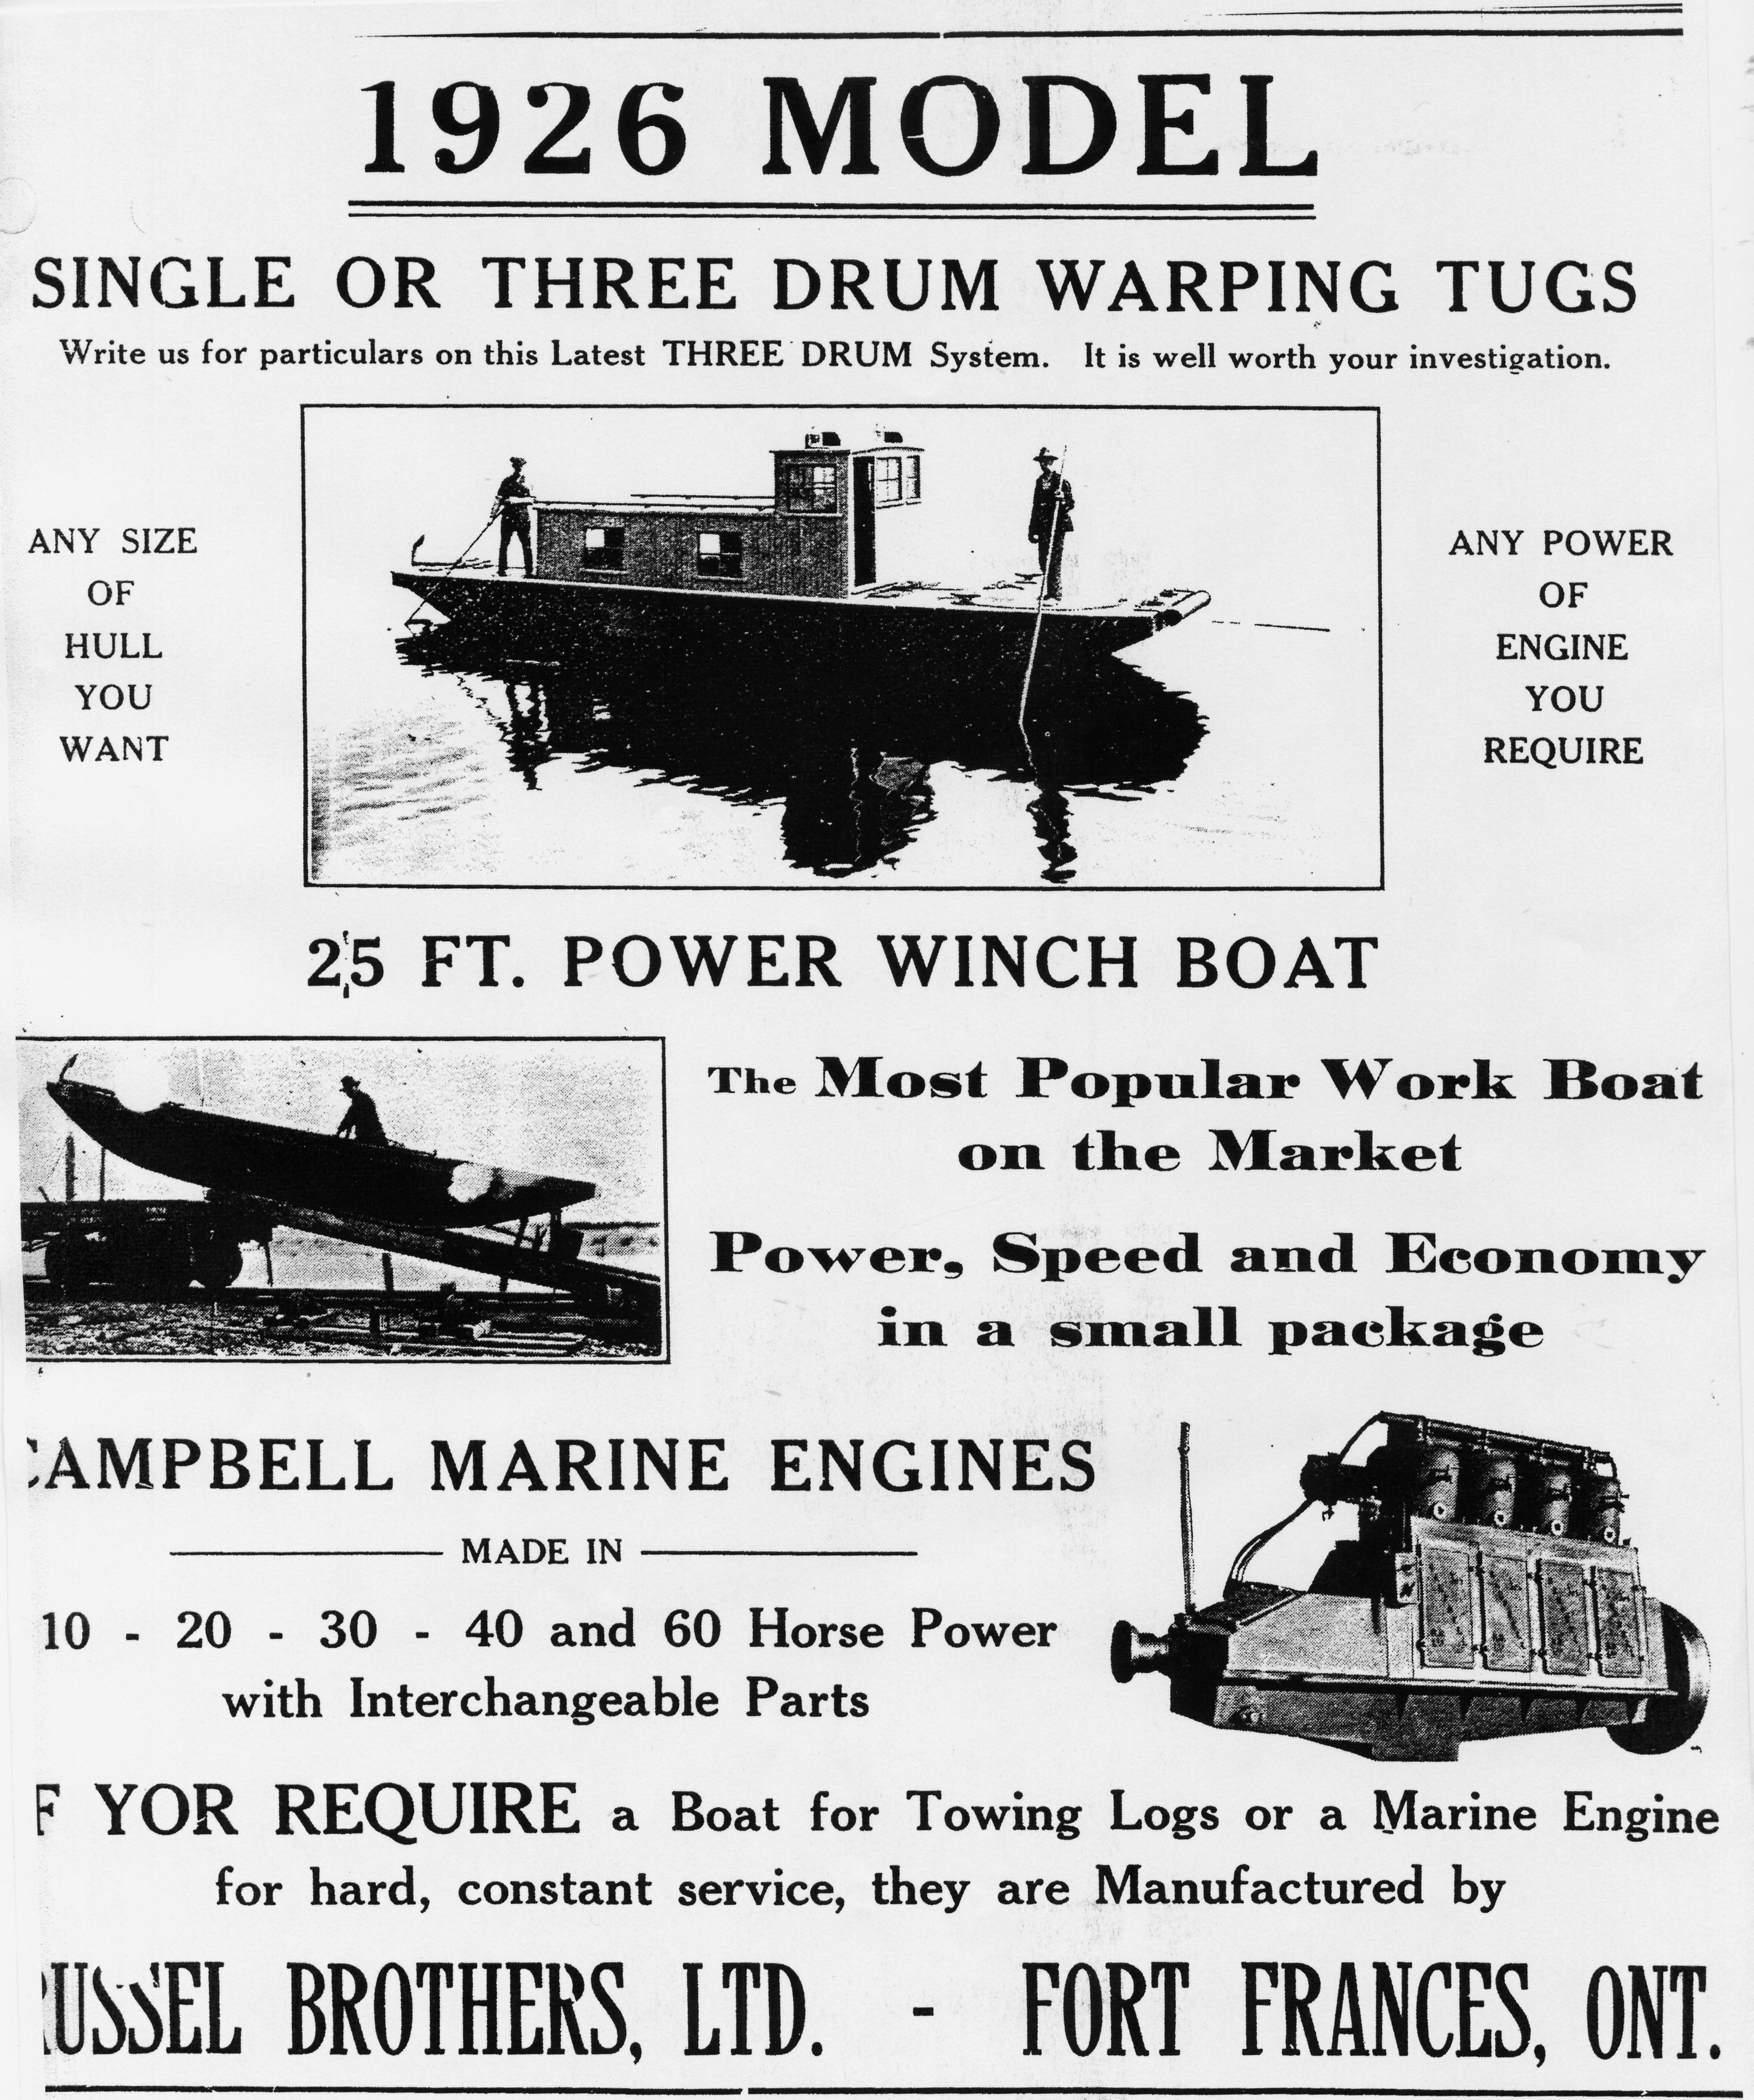 RUSSEL BROTHERS Ltd. Steelcraft winch boat and warping tug builders ...